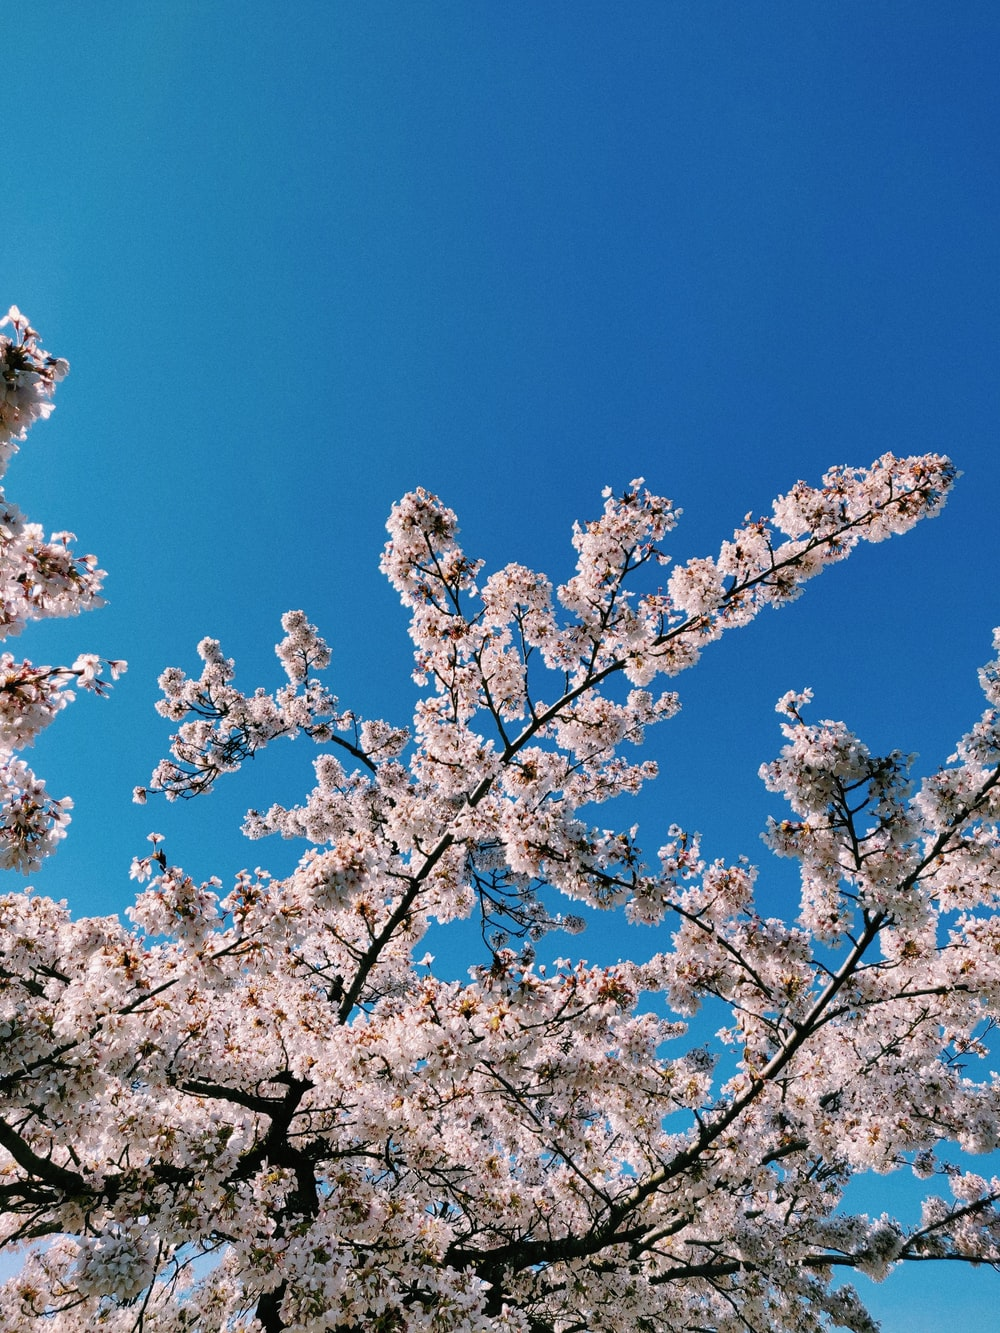 white cherry blossom under blue sky during daytime